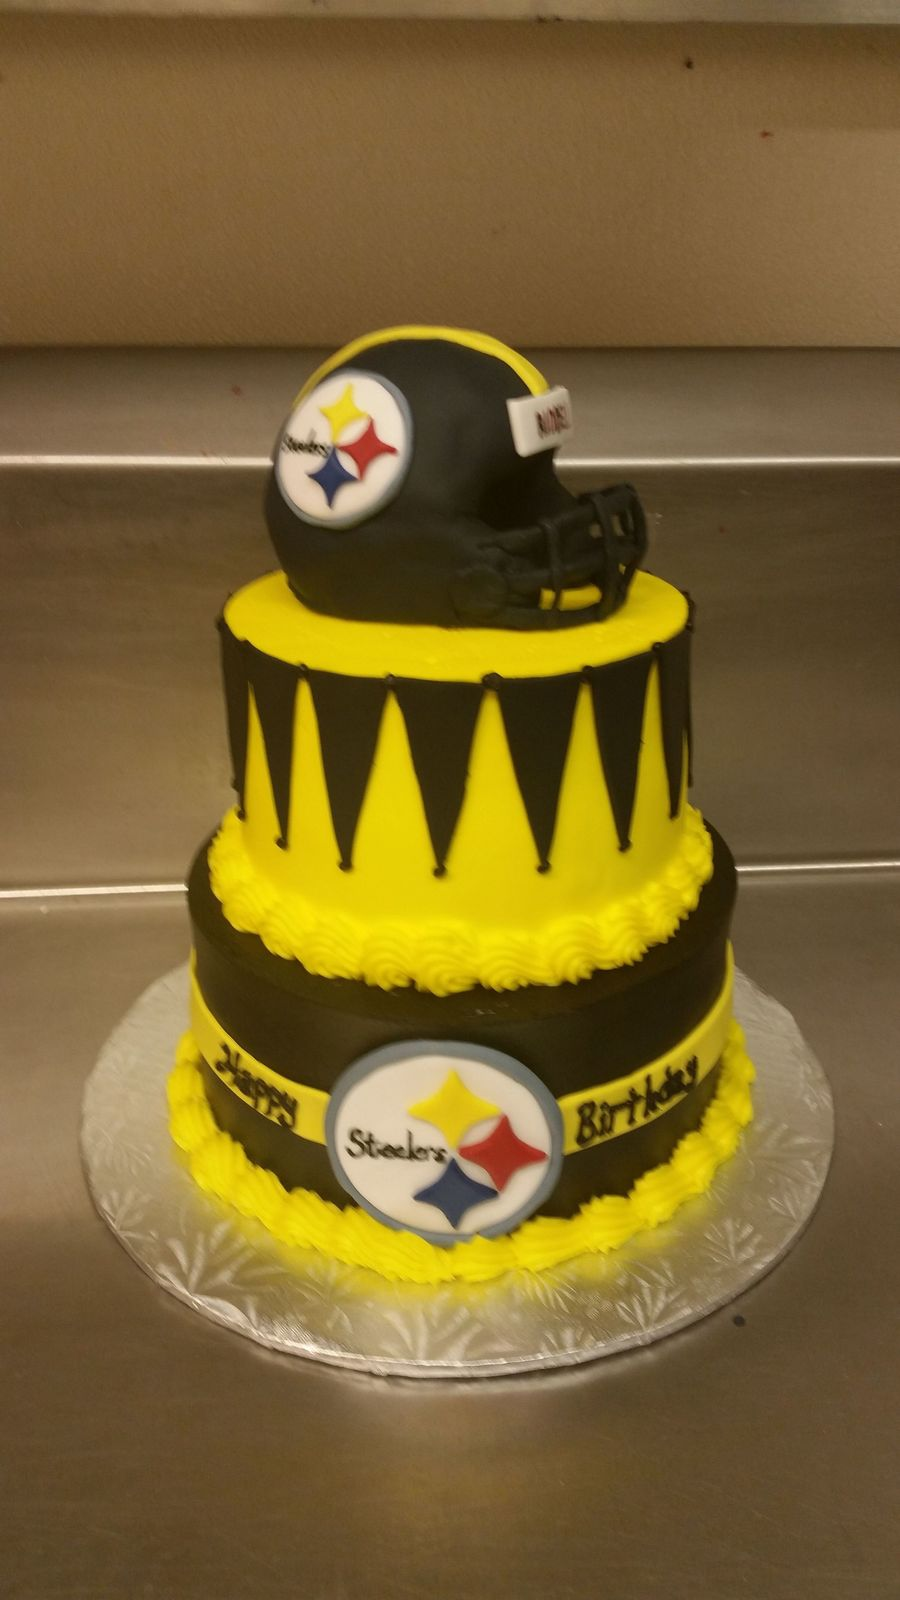 Steelers Birthday Cake Fondant Covered Rice Krispie Helmet The Cake Buttercream With Fondant Details on Cake Central